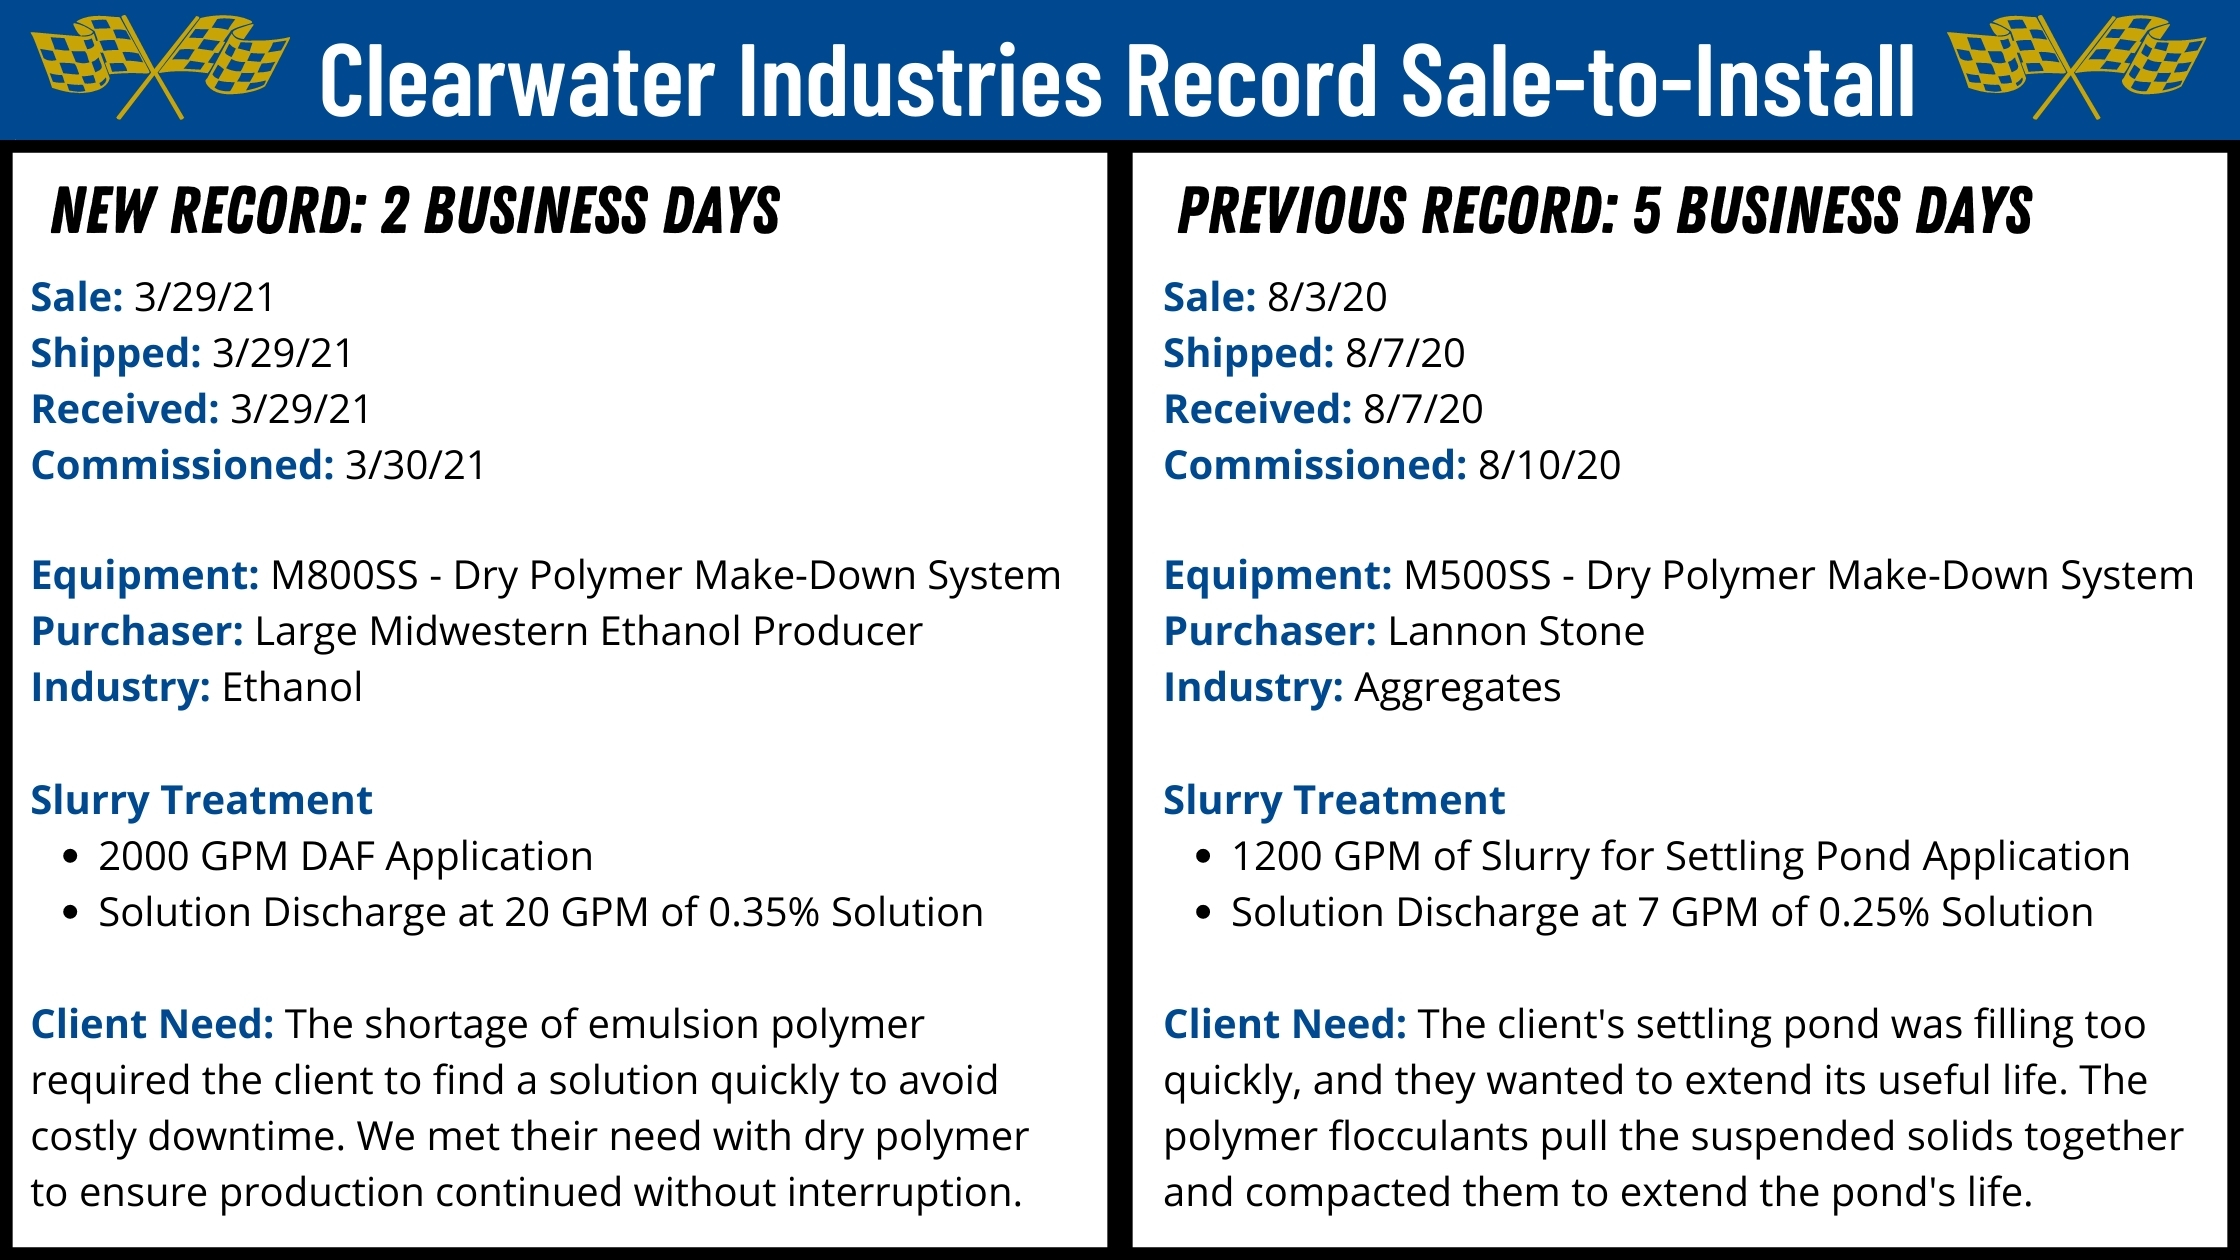 An image showing Clearwater Industries record sale-to-installs with the newest record on the left.